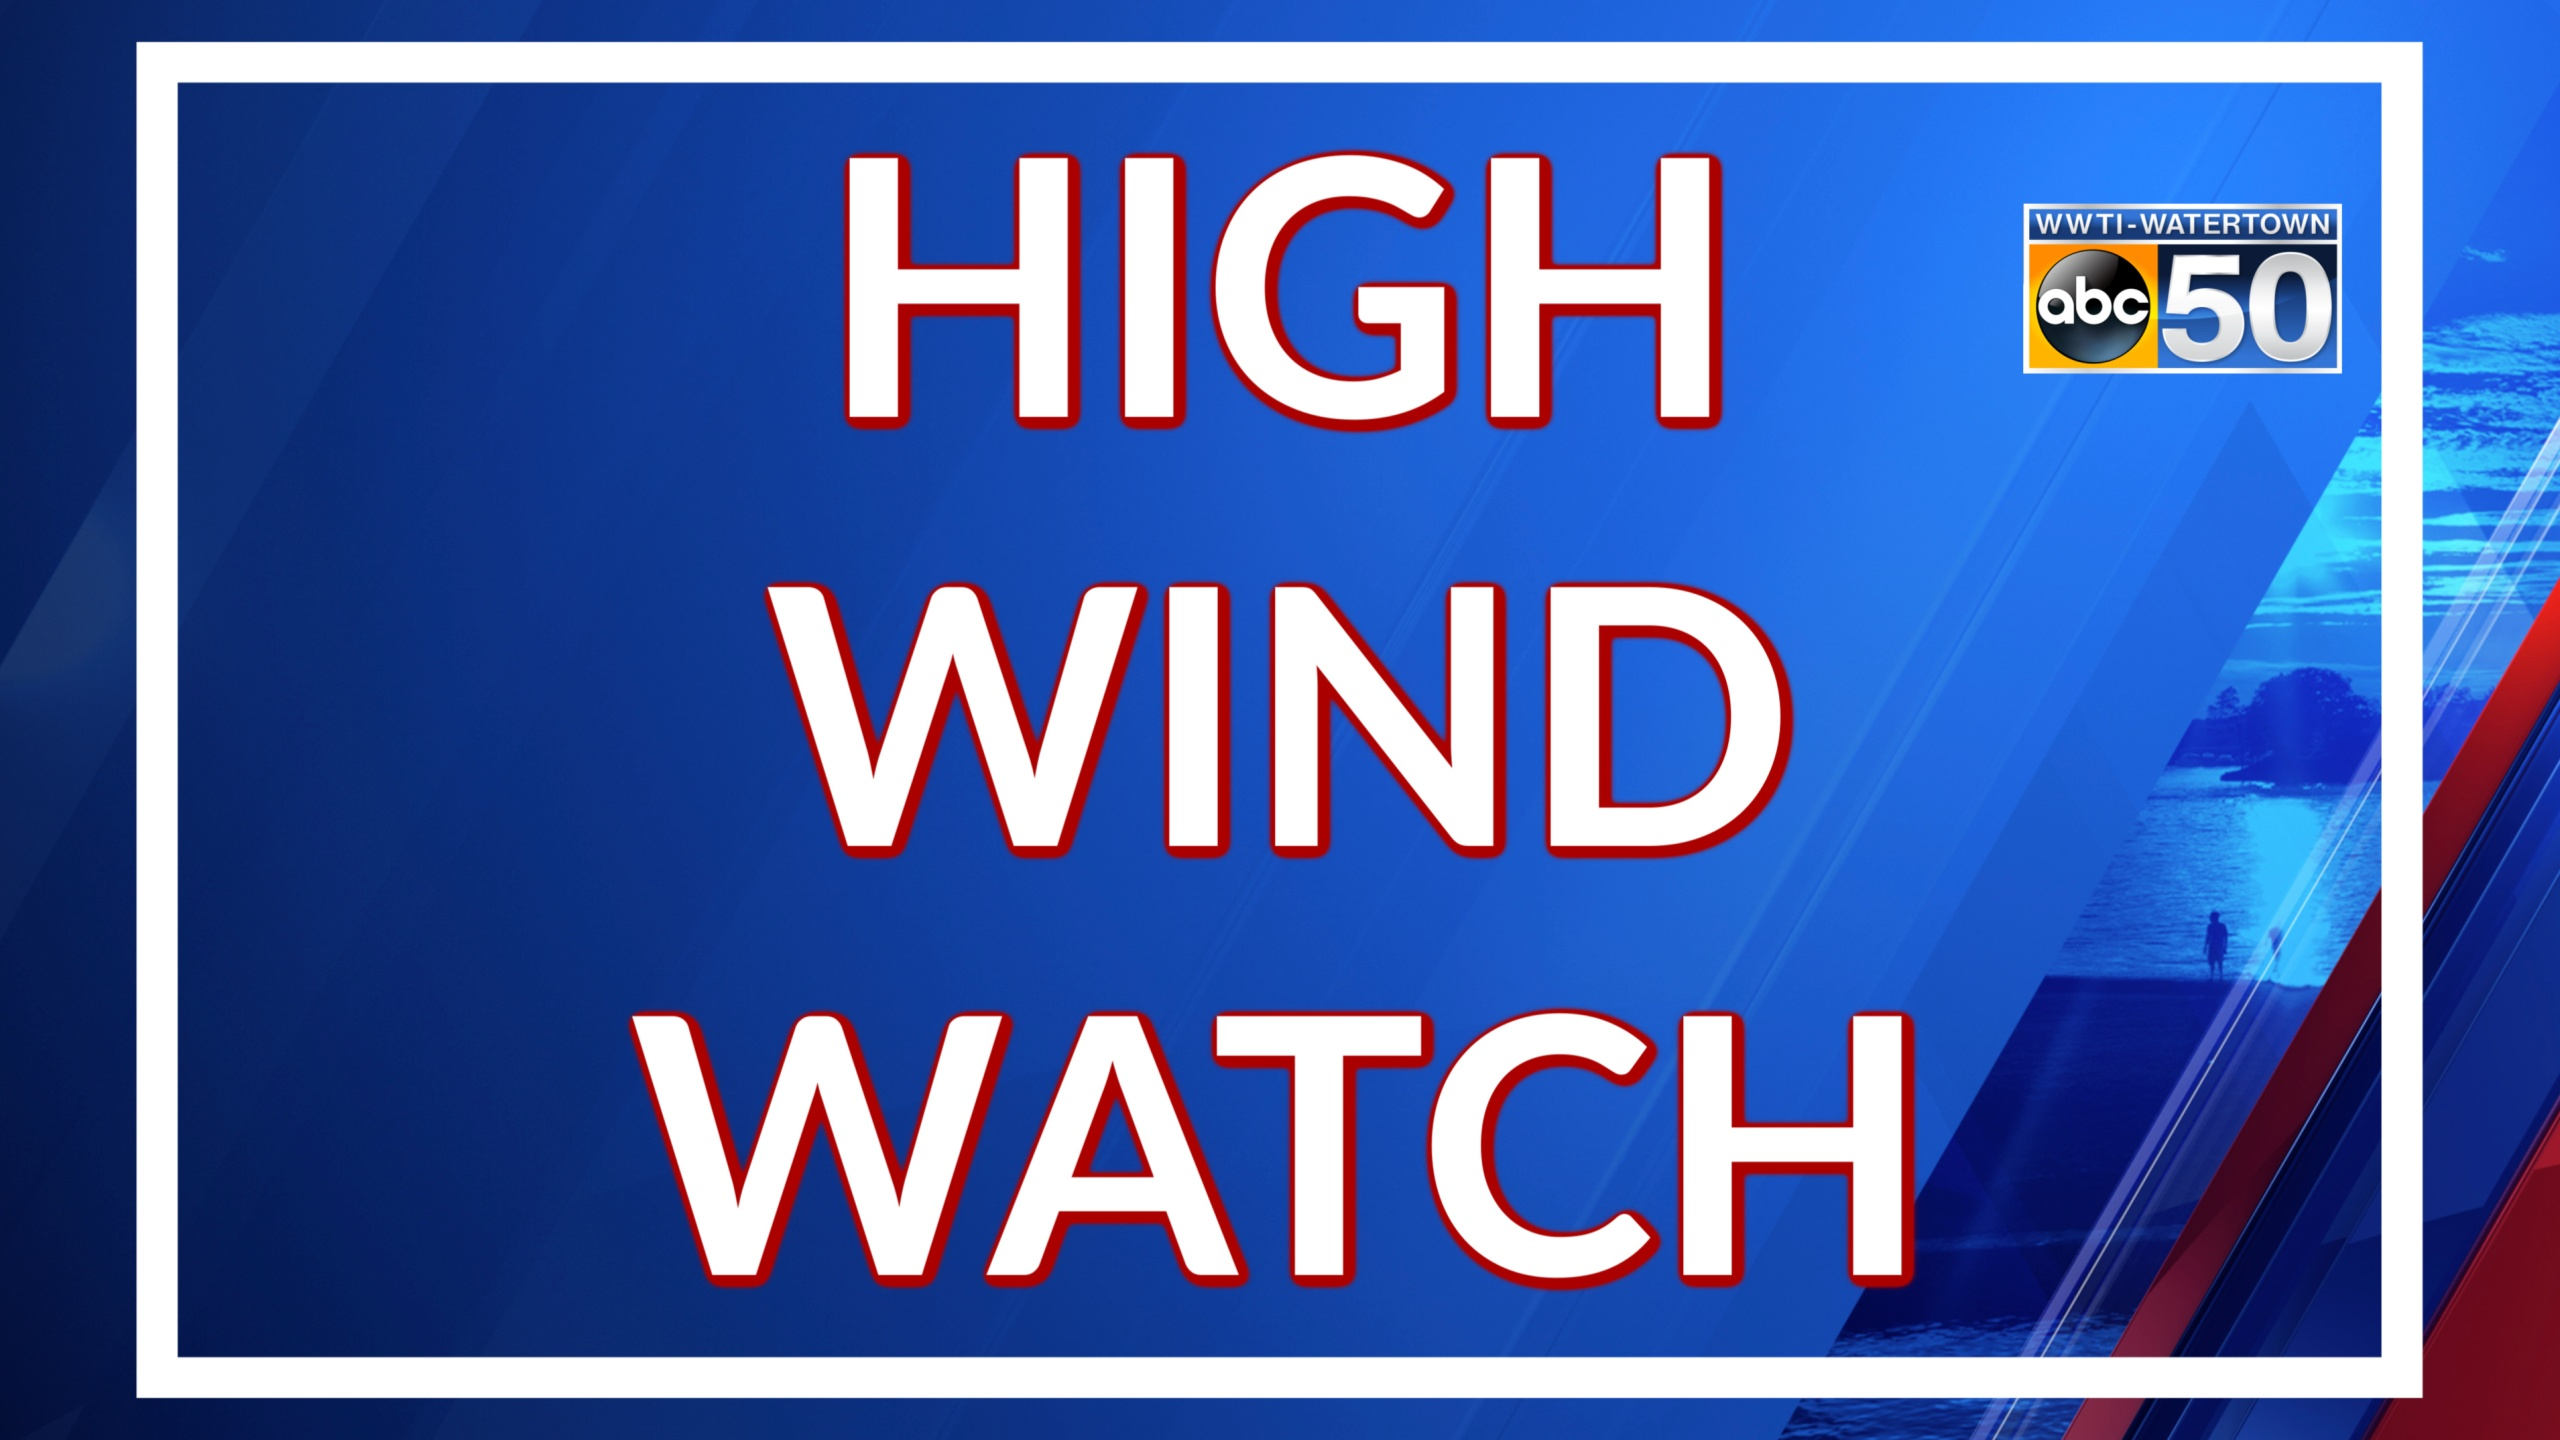 HIGH WIND WATCH_1552060018041.jpg.jpg